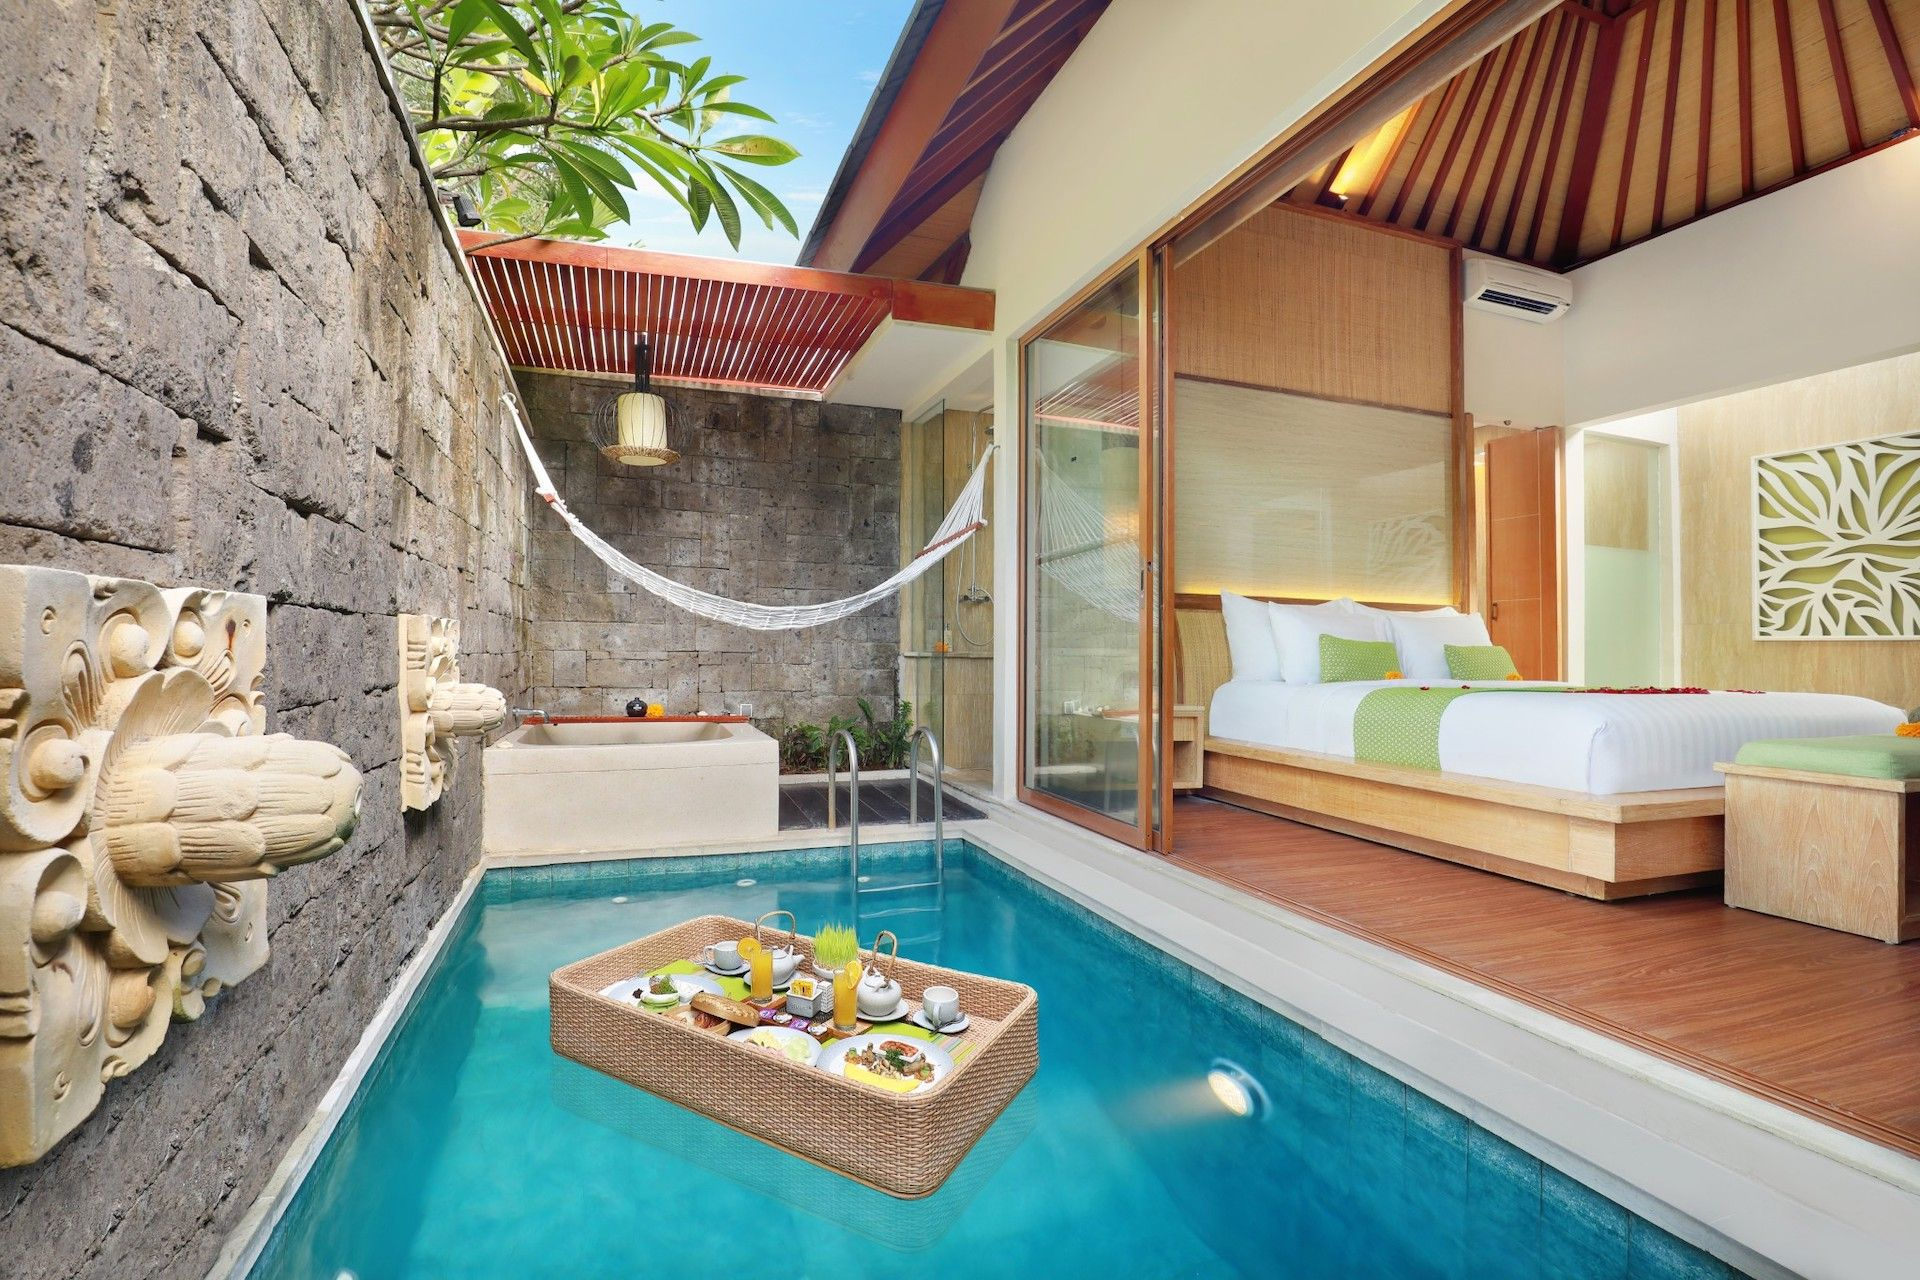 Wonderful 3 Bedroom Villa Umalas Pool Houses Bali House Small Pool Design